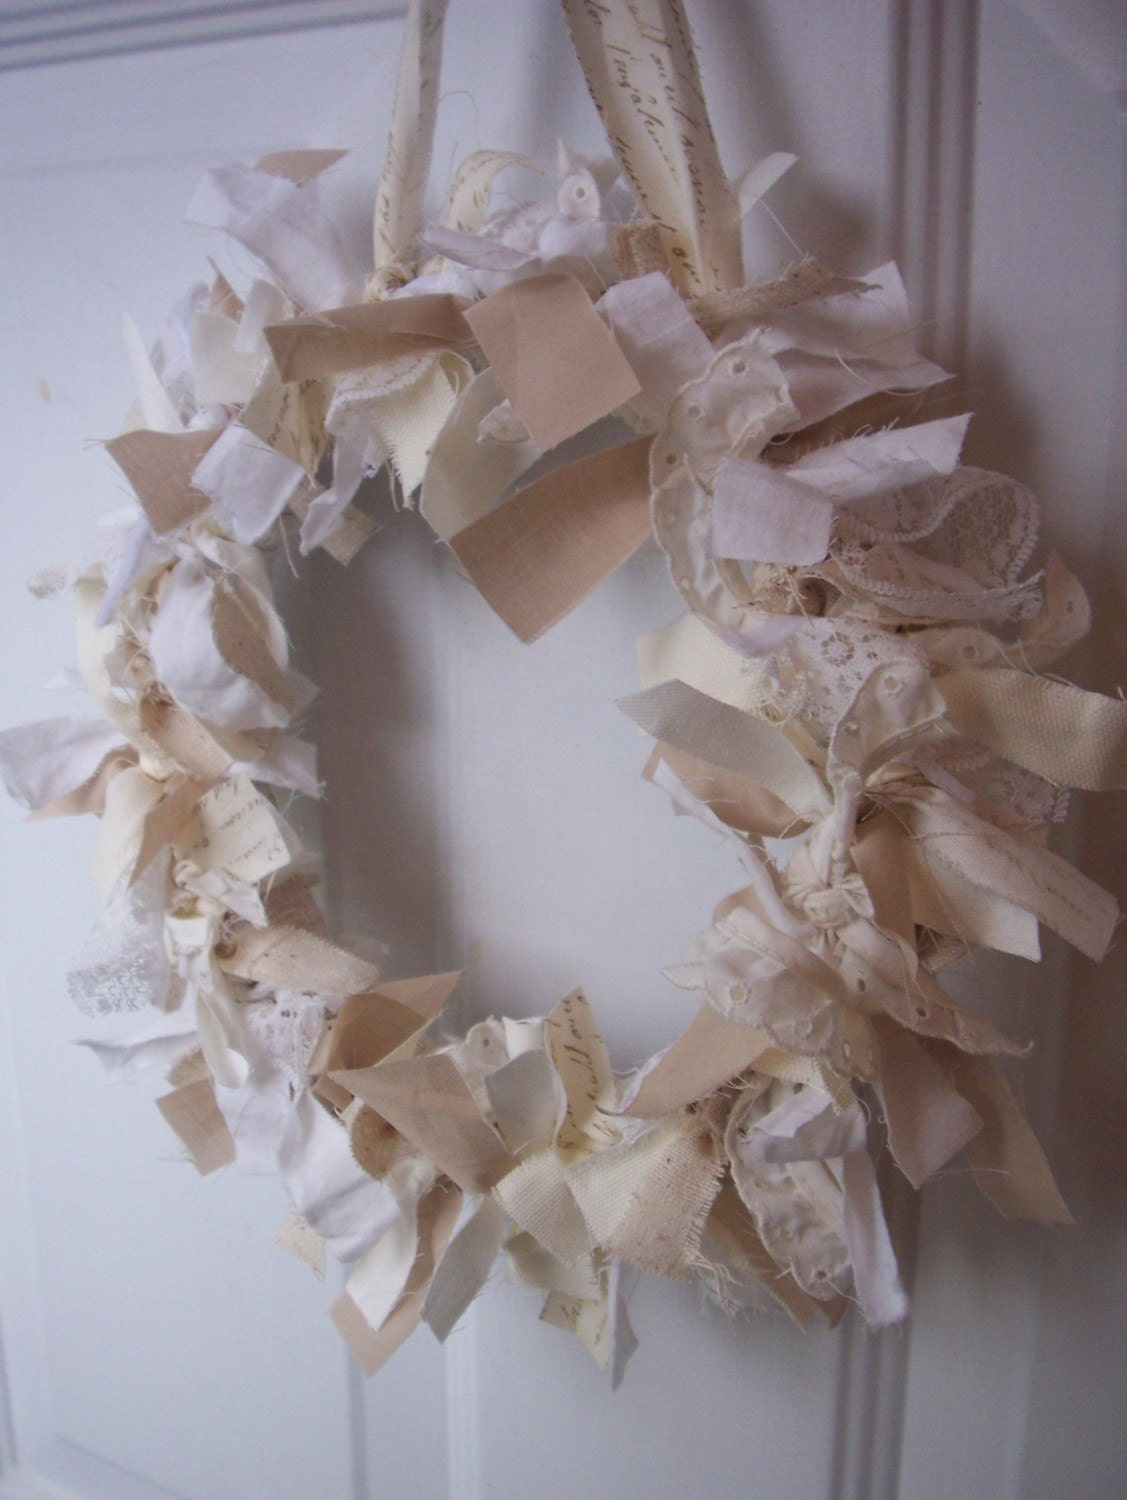 found for her shabby chic vintage spring wedding her comments below